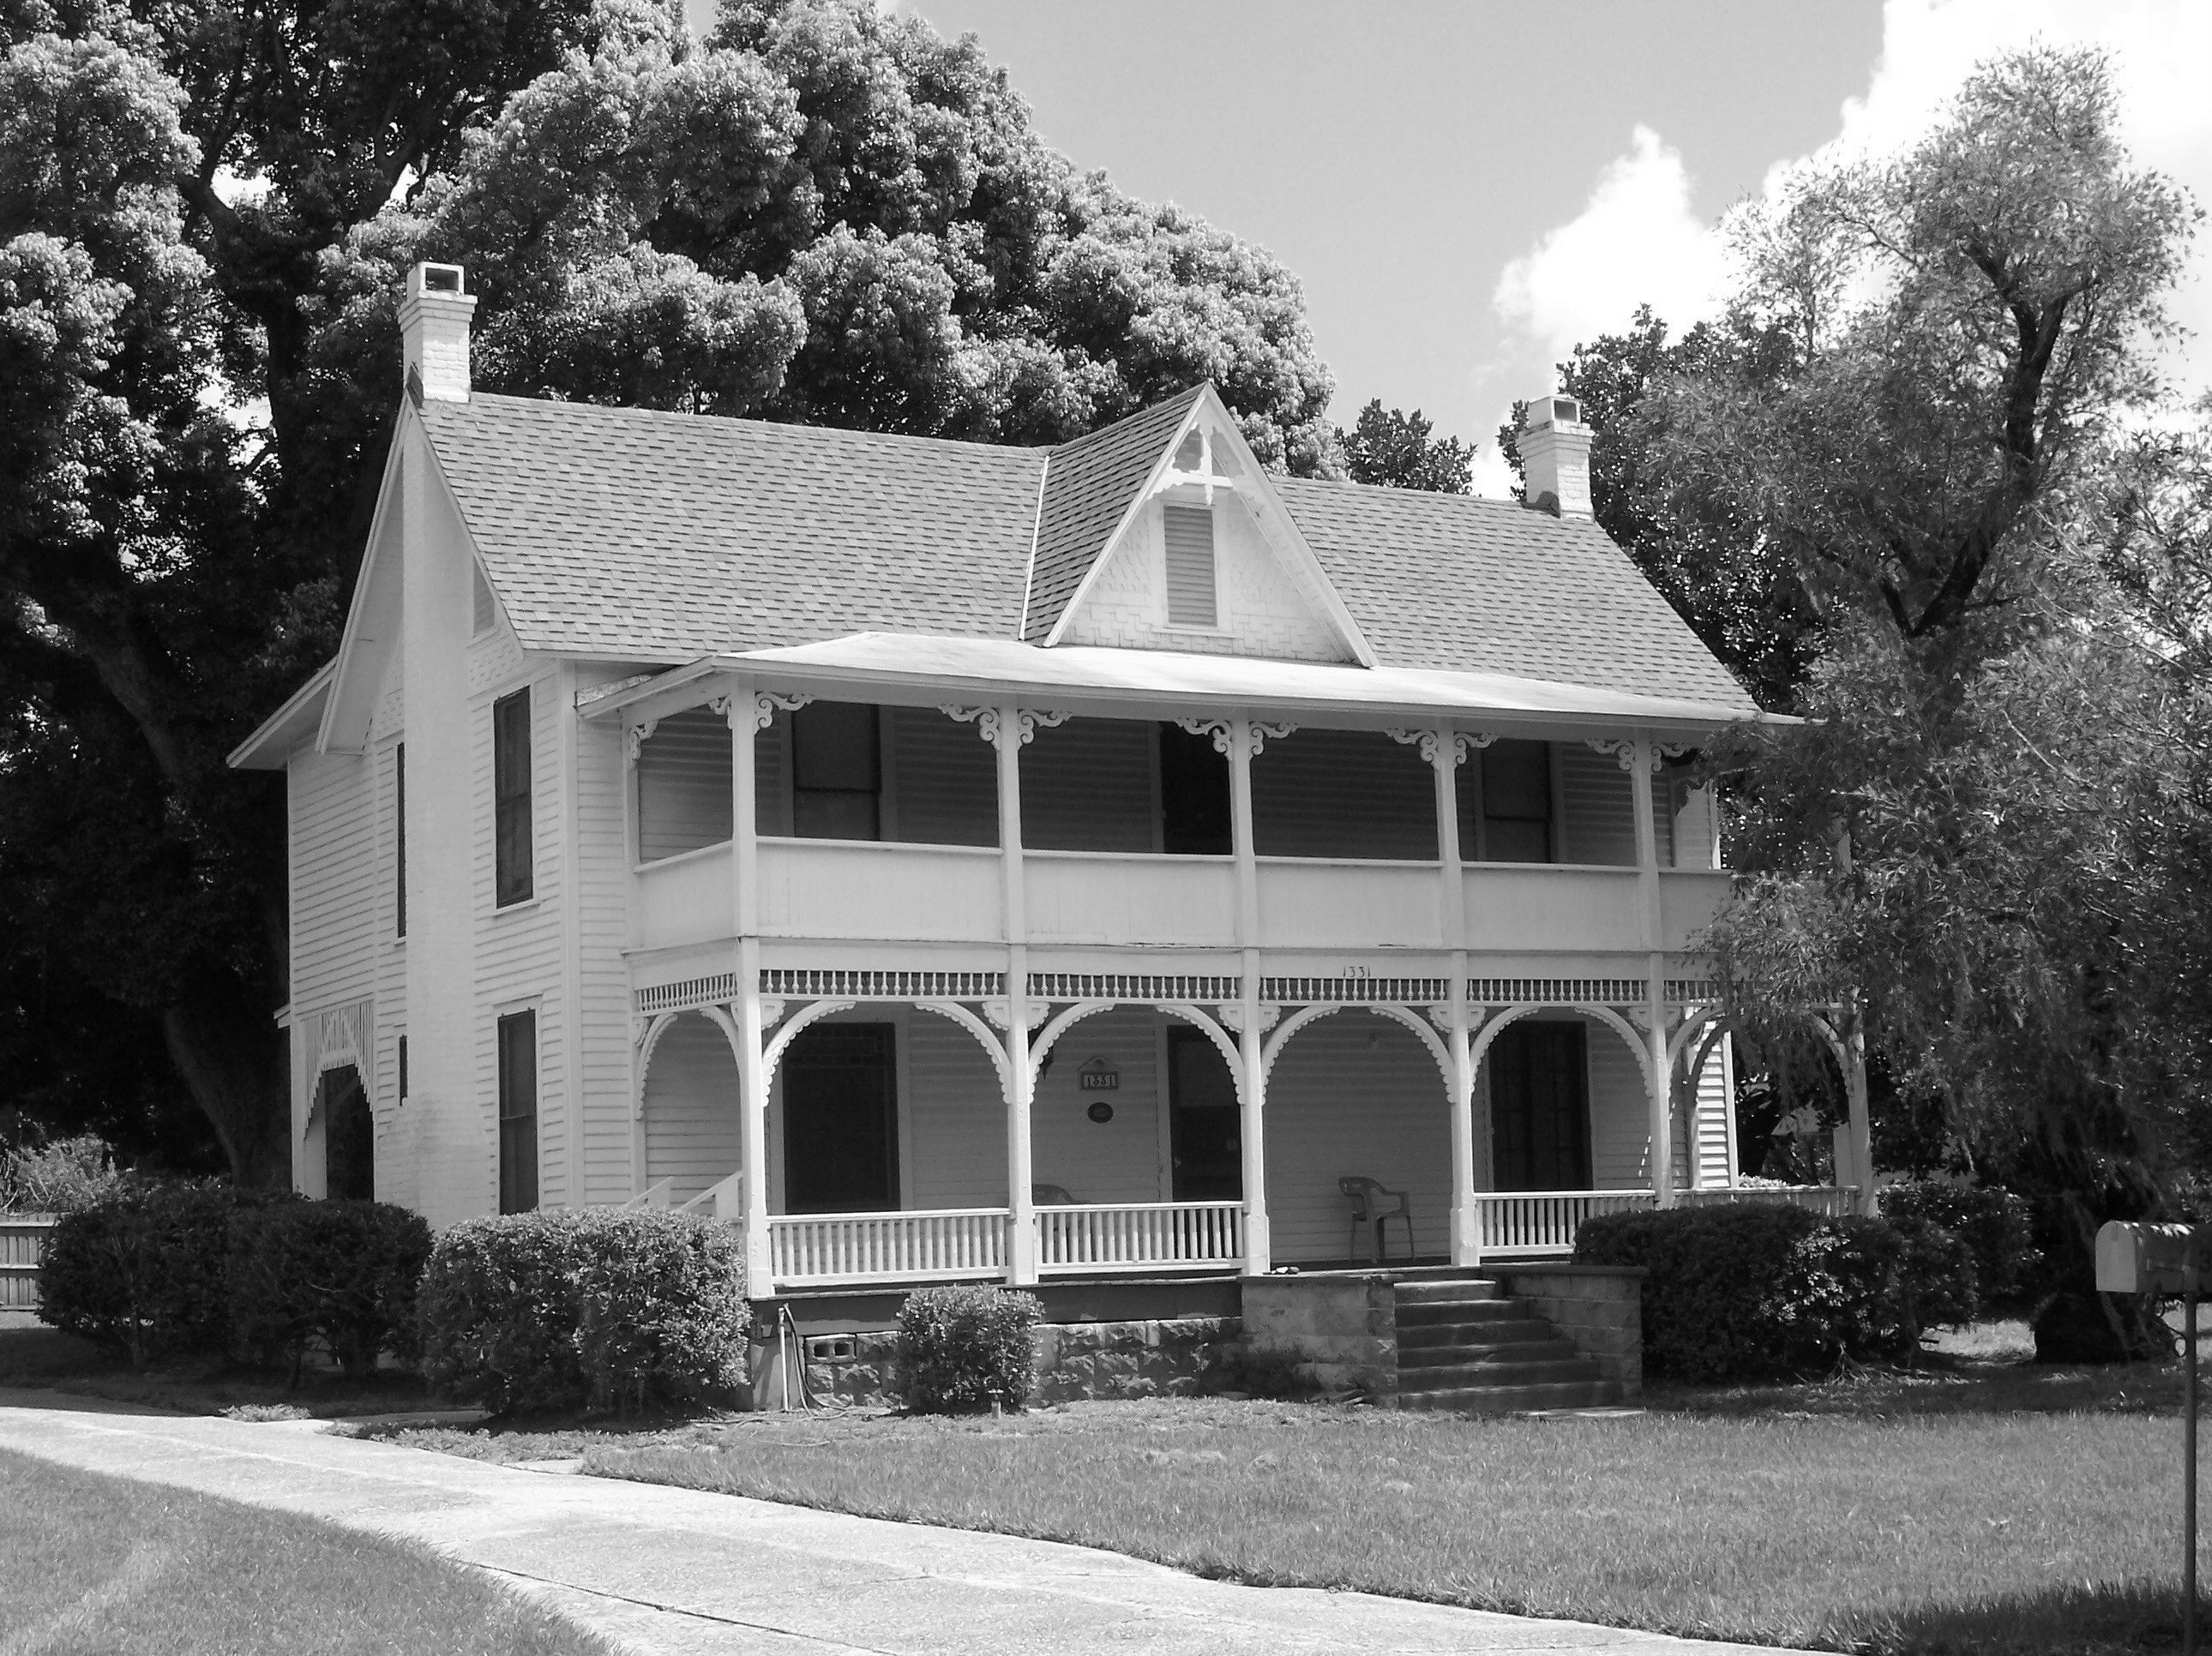 Photobike tour 6 winter park in black and white what Black and white homes